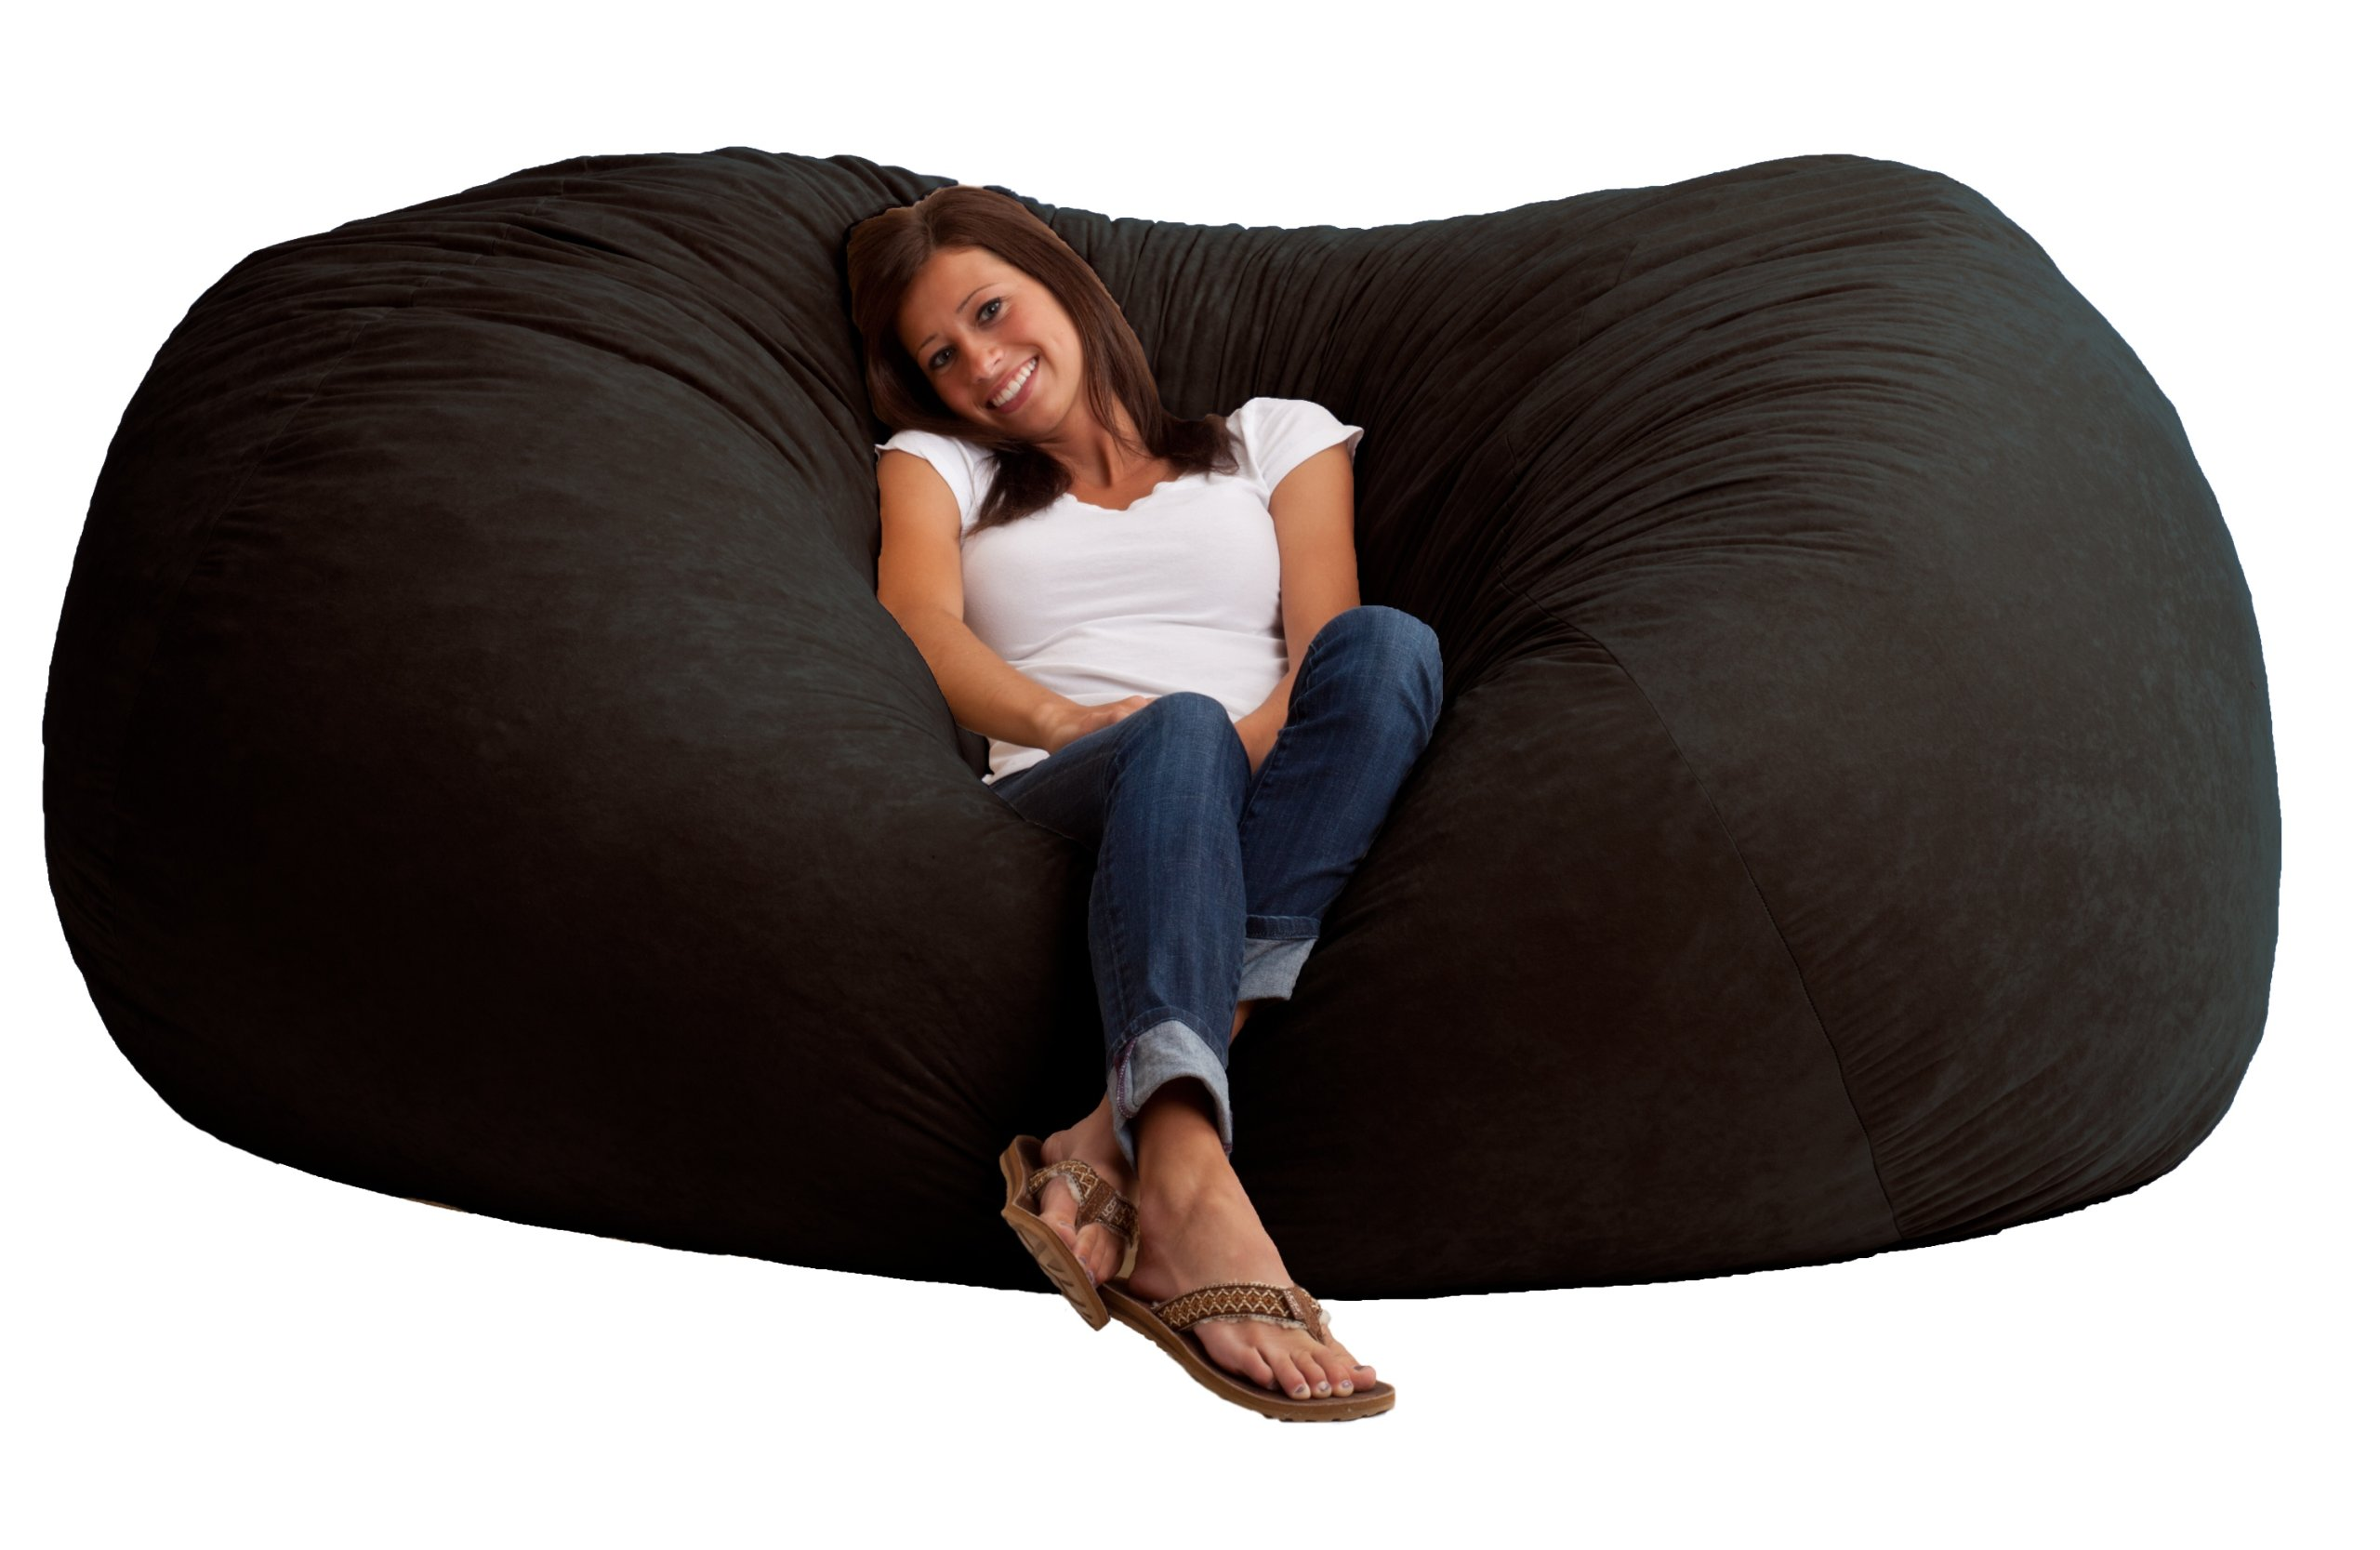 sofa bean bags nice houzz. Black Bedroom Furniture Sets. Home Design Ideas